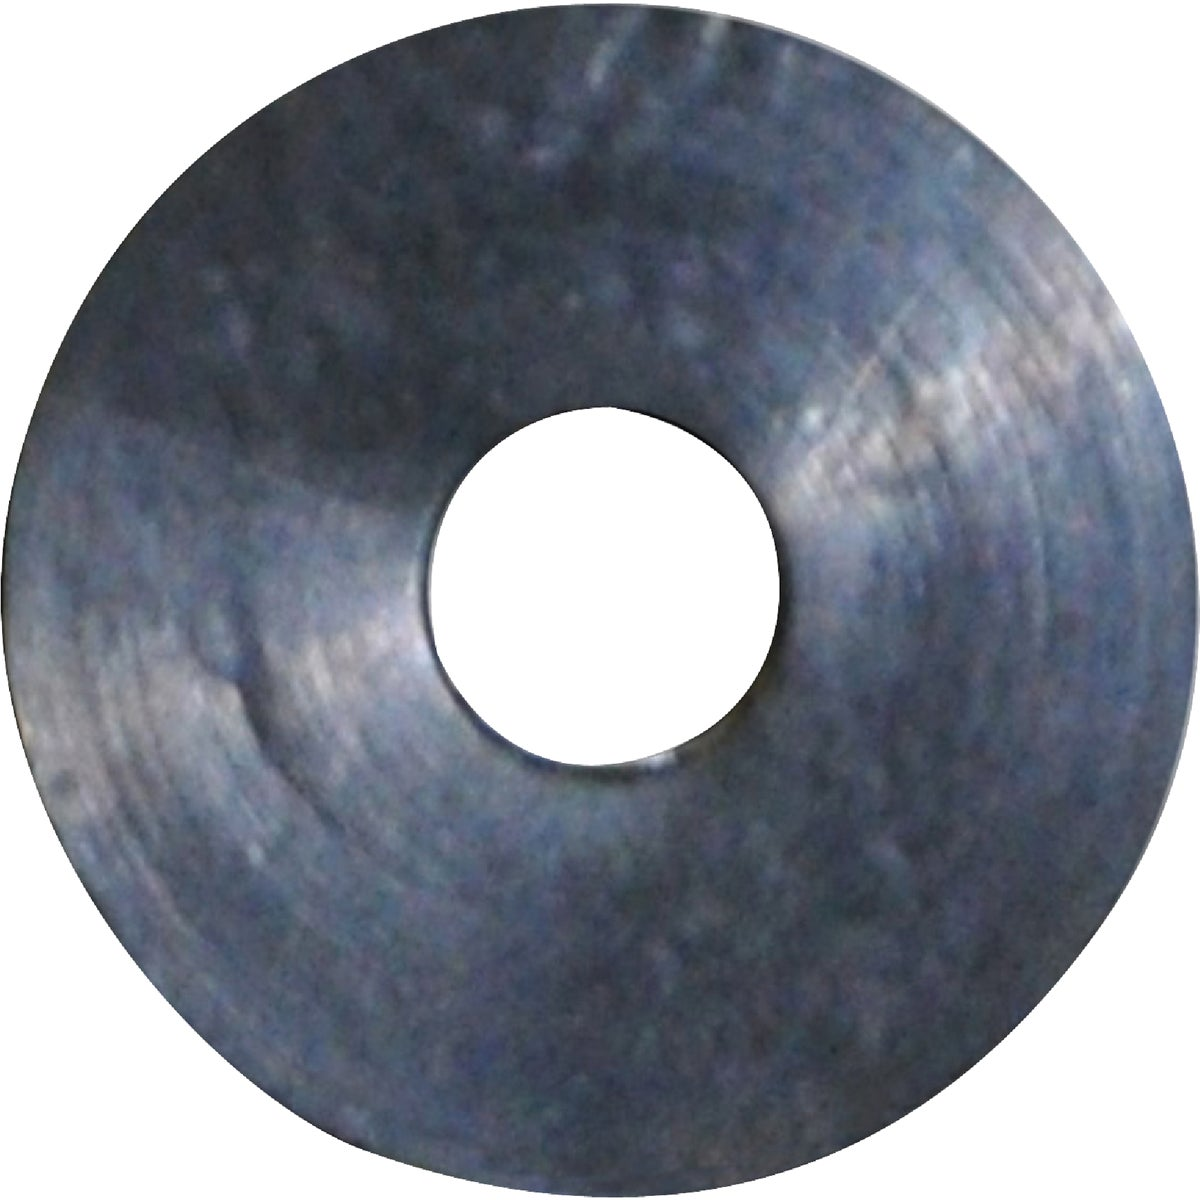 Danco 88575 Rubber Flat Washer, 21/32-Inch, 10-Pack